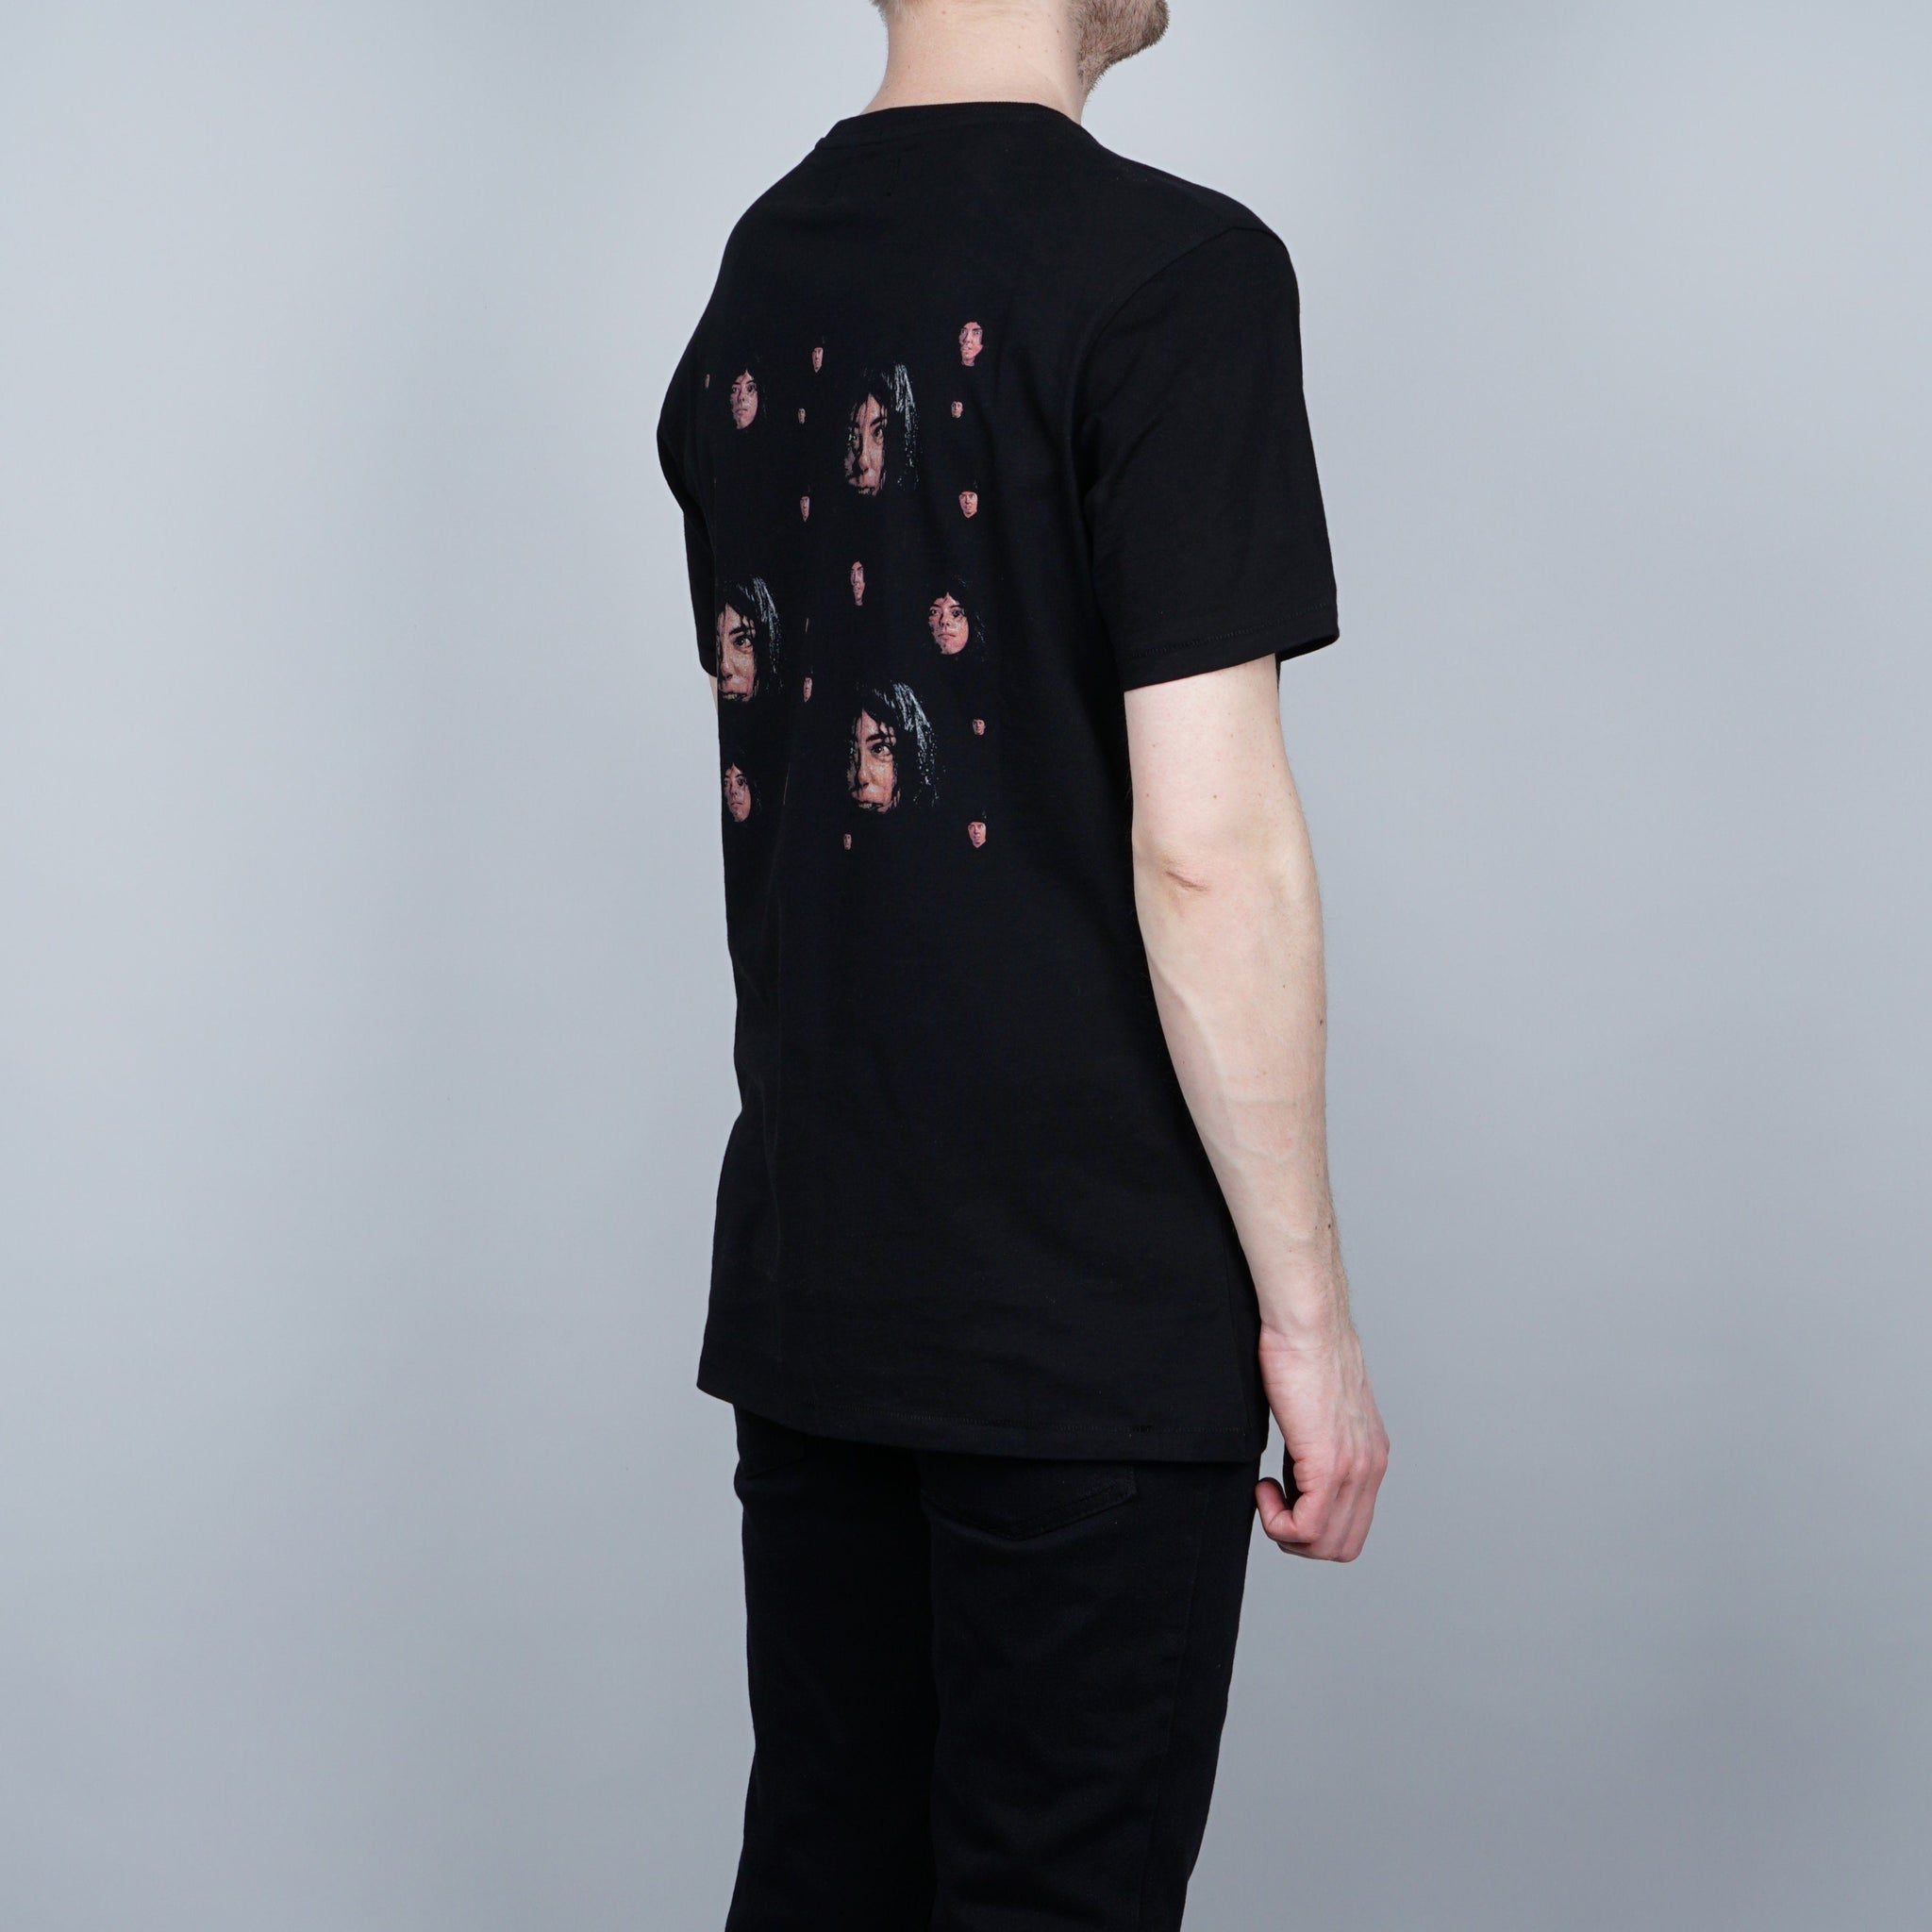 Soulland Frenchy T-shirt - Black with print